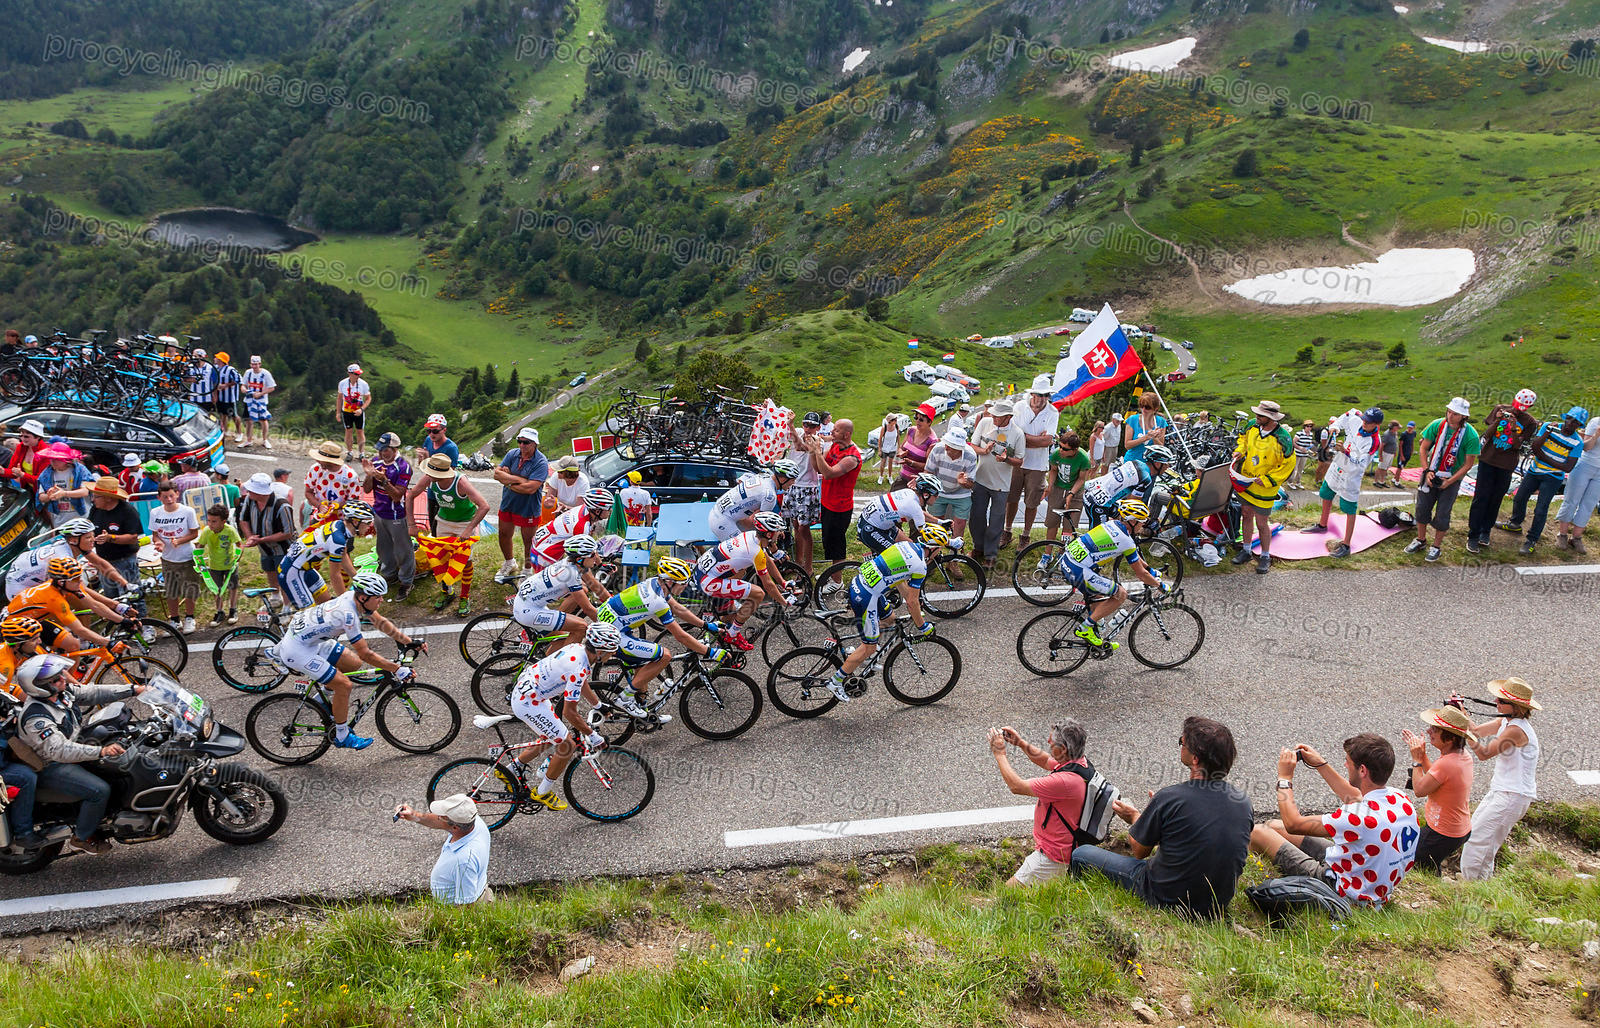 The Peloton in Pyrenees - Tour de France 2013